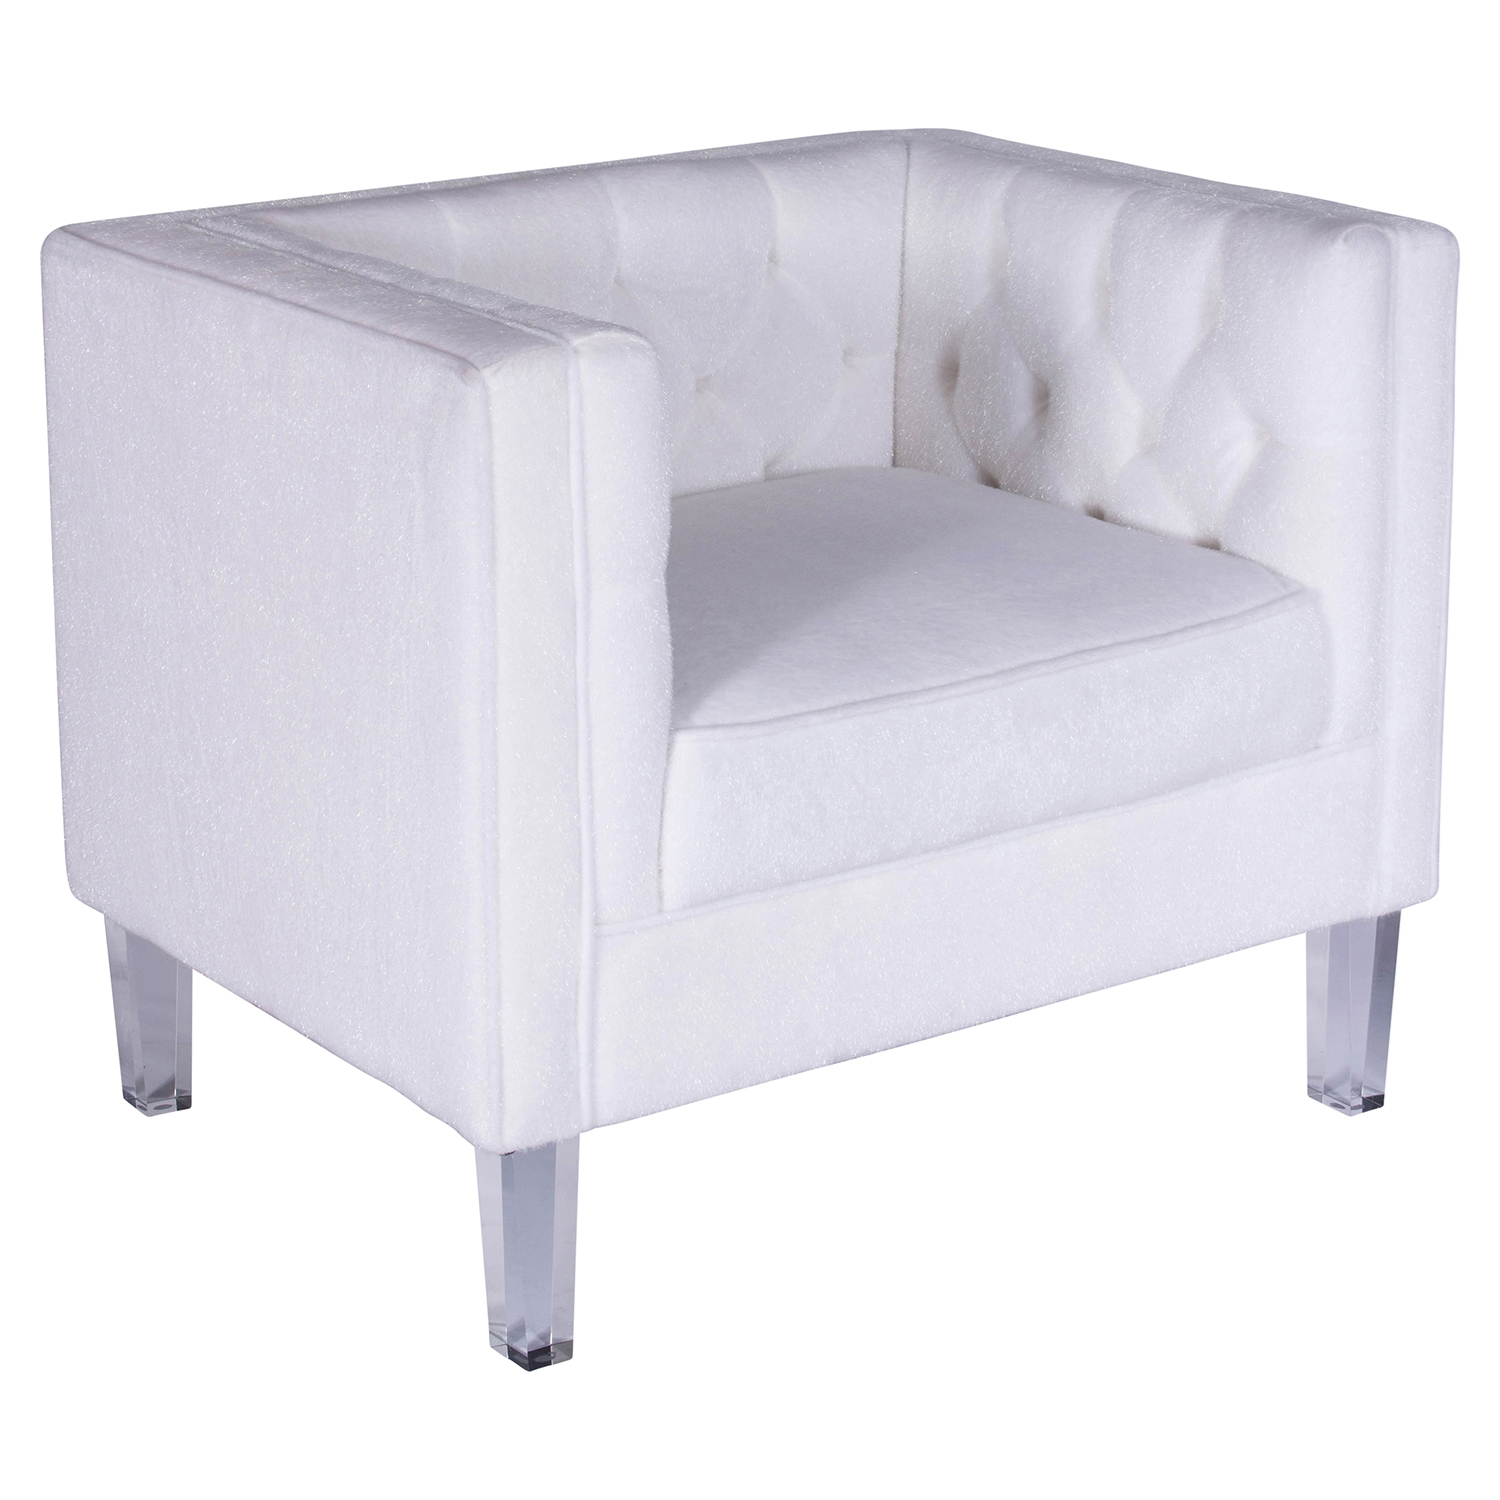 Valentina Tufted Upholstery Armchair - Bone White